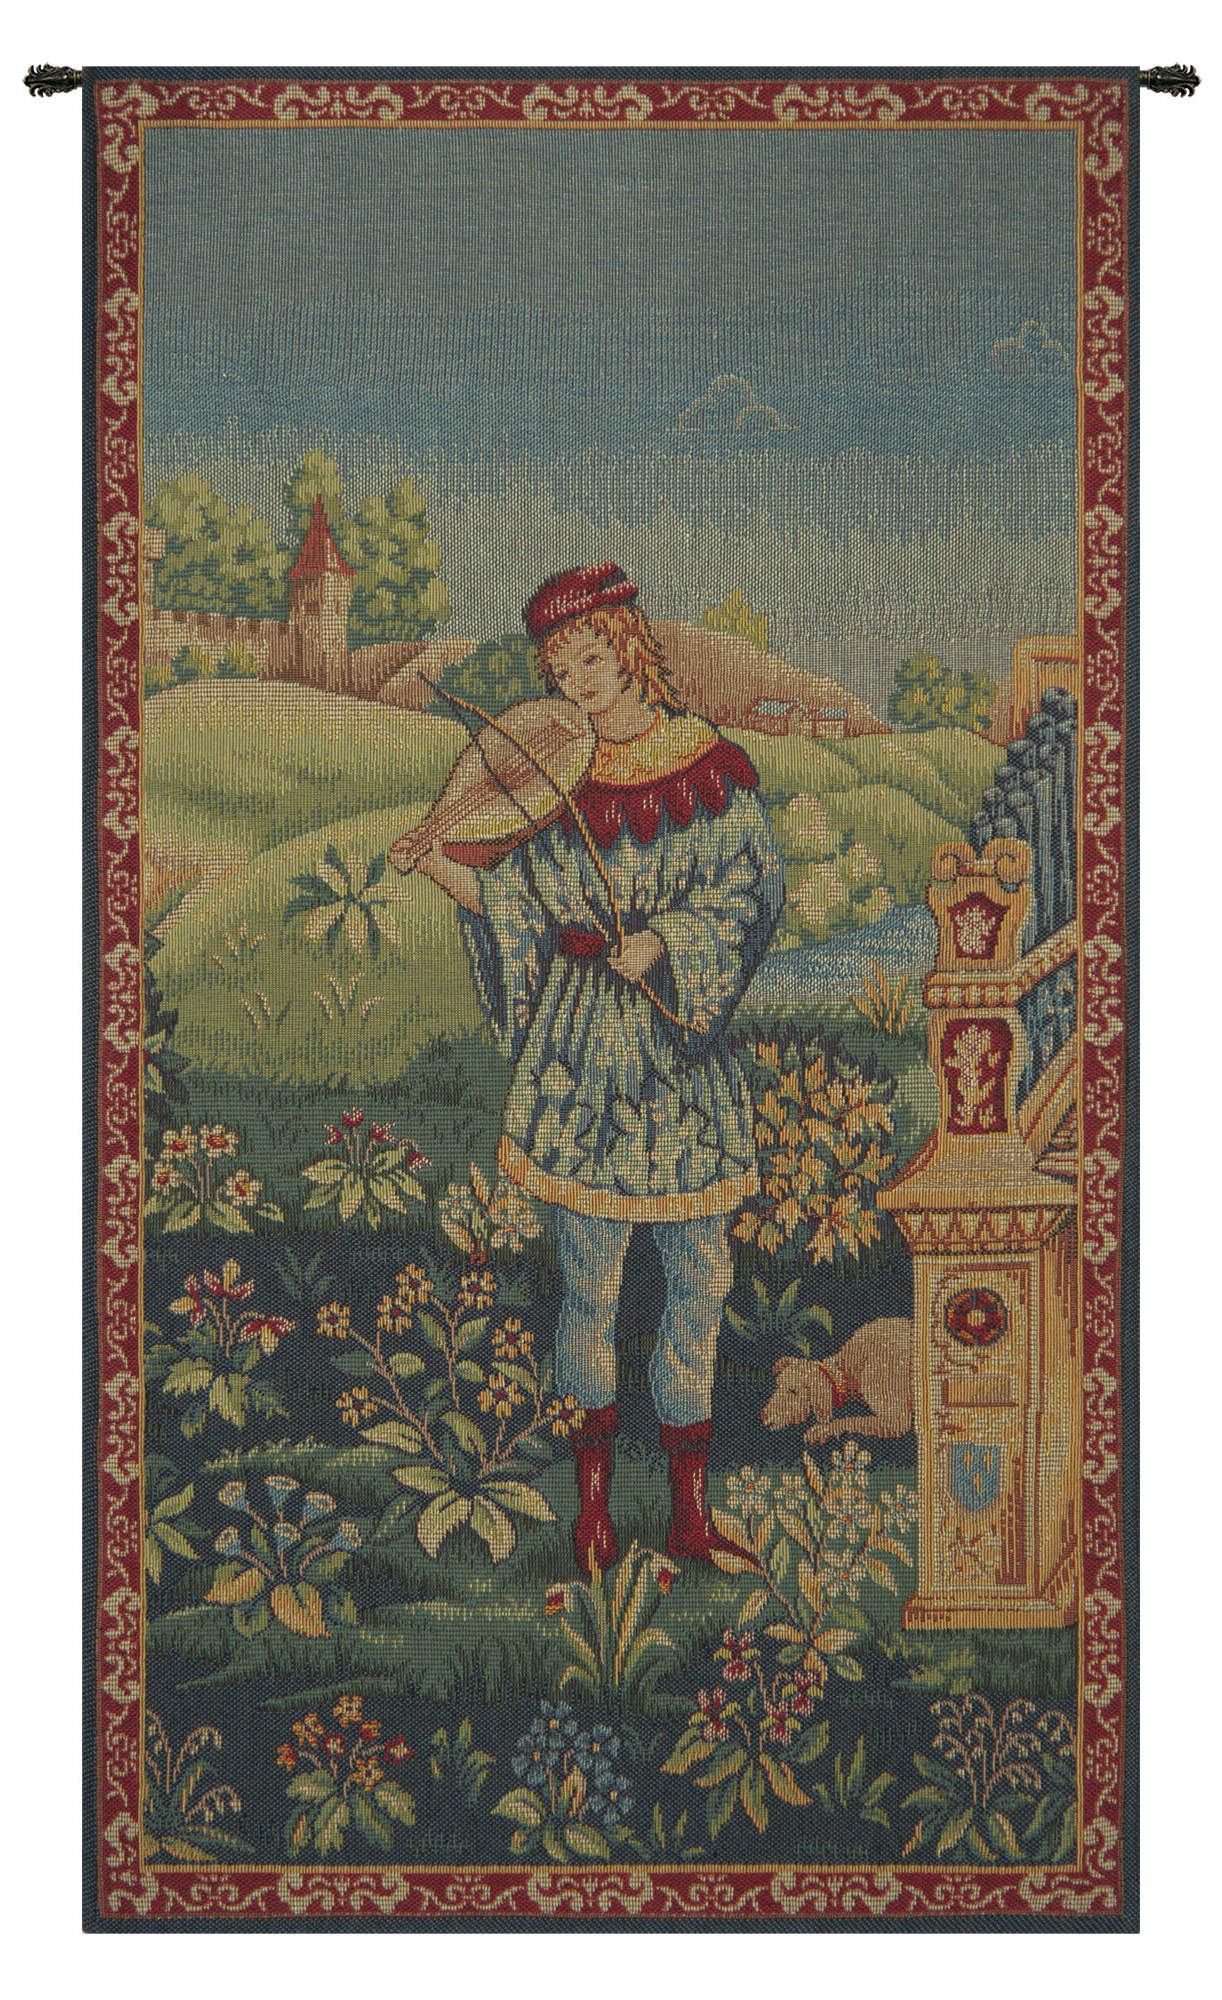 Blended Fabric Le Troubadour Tapestry Intended For Well Known Blended Fabric Irises Tapestries (View 5 of 20)